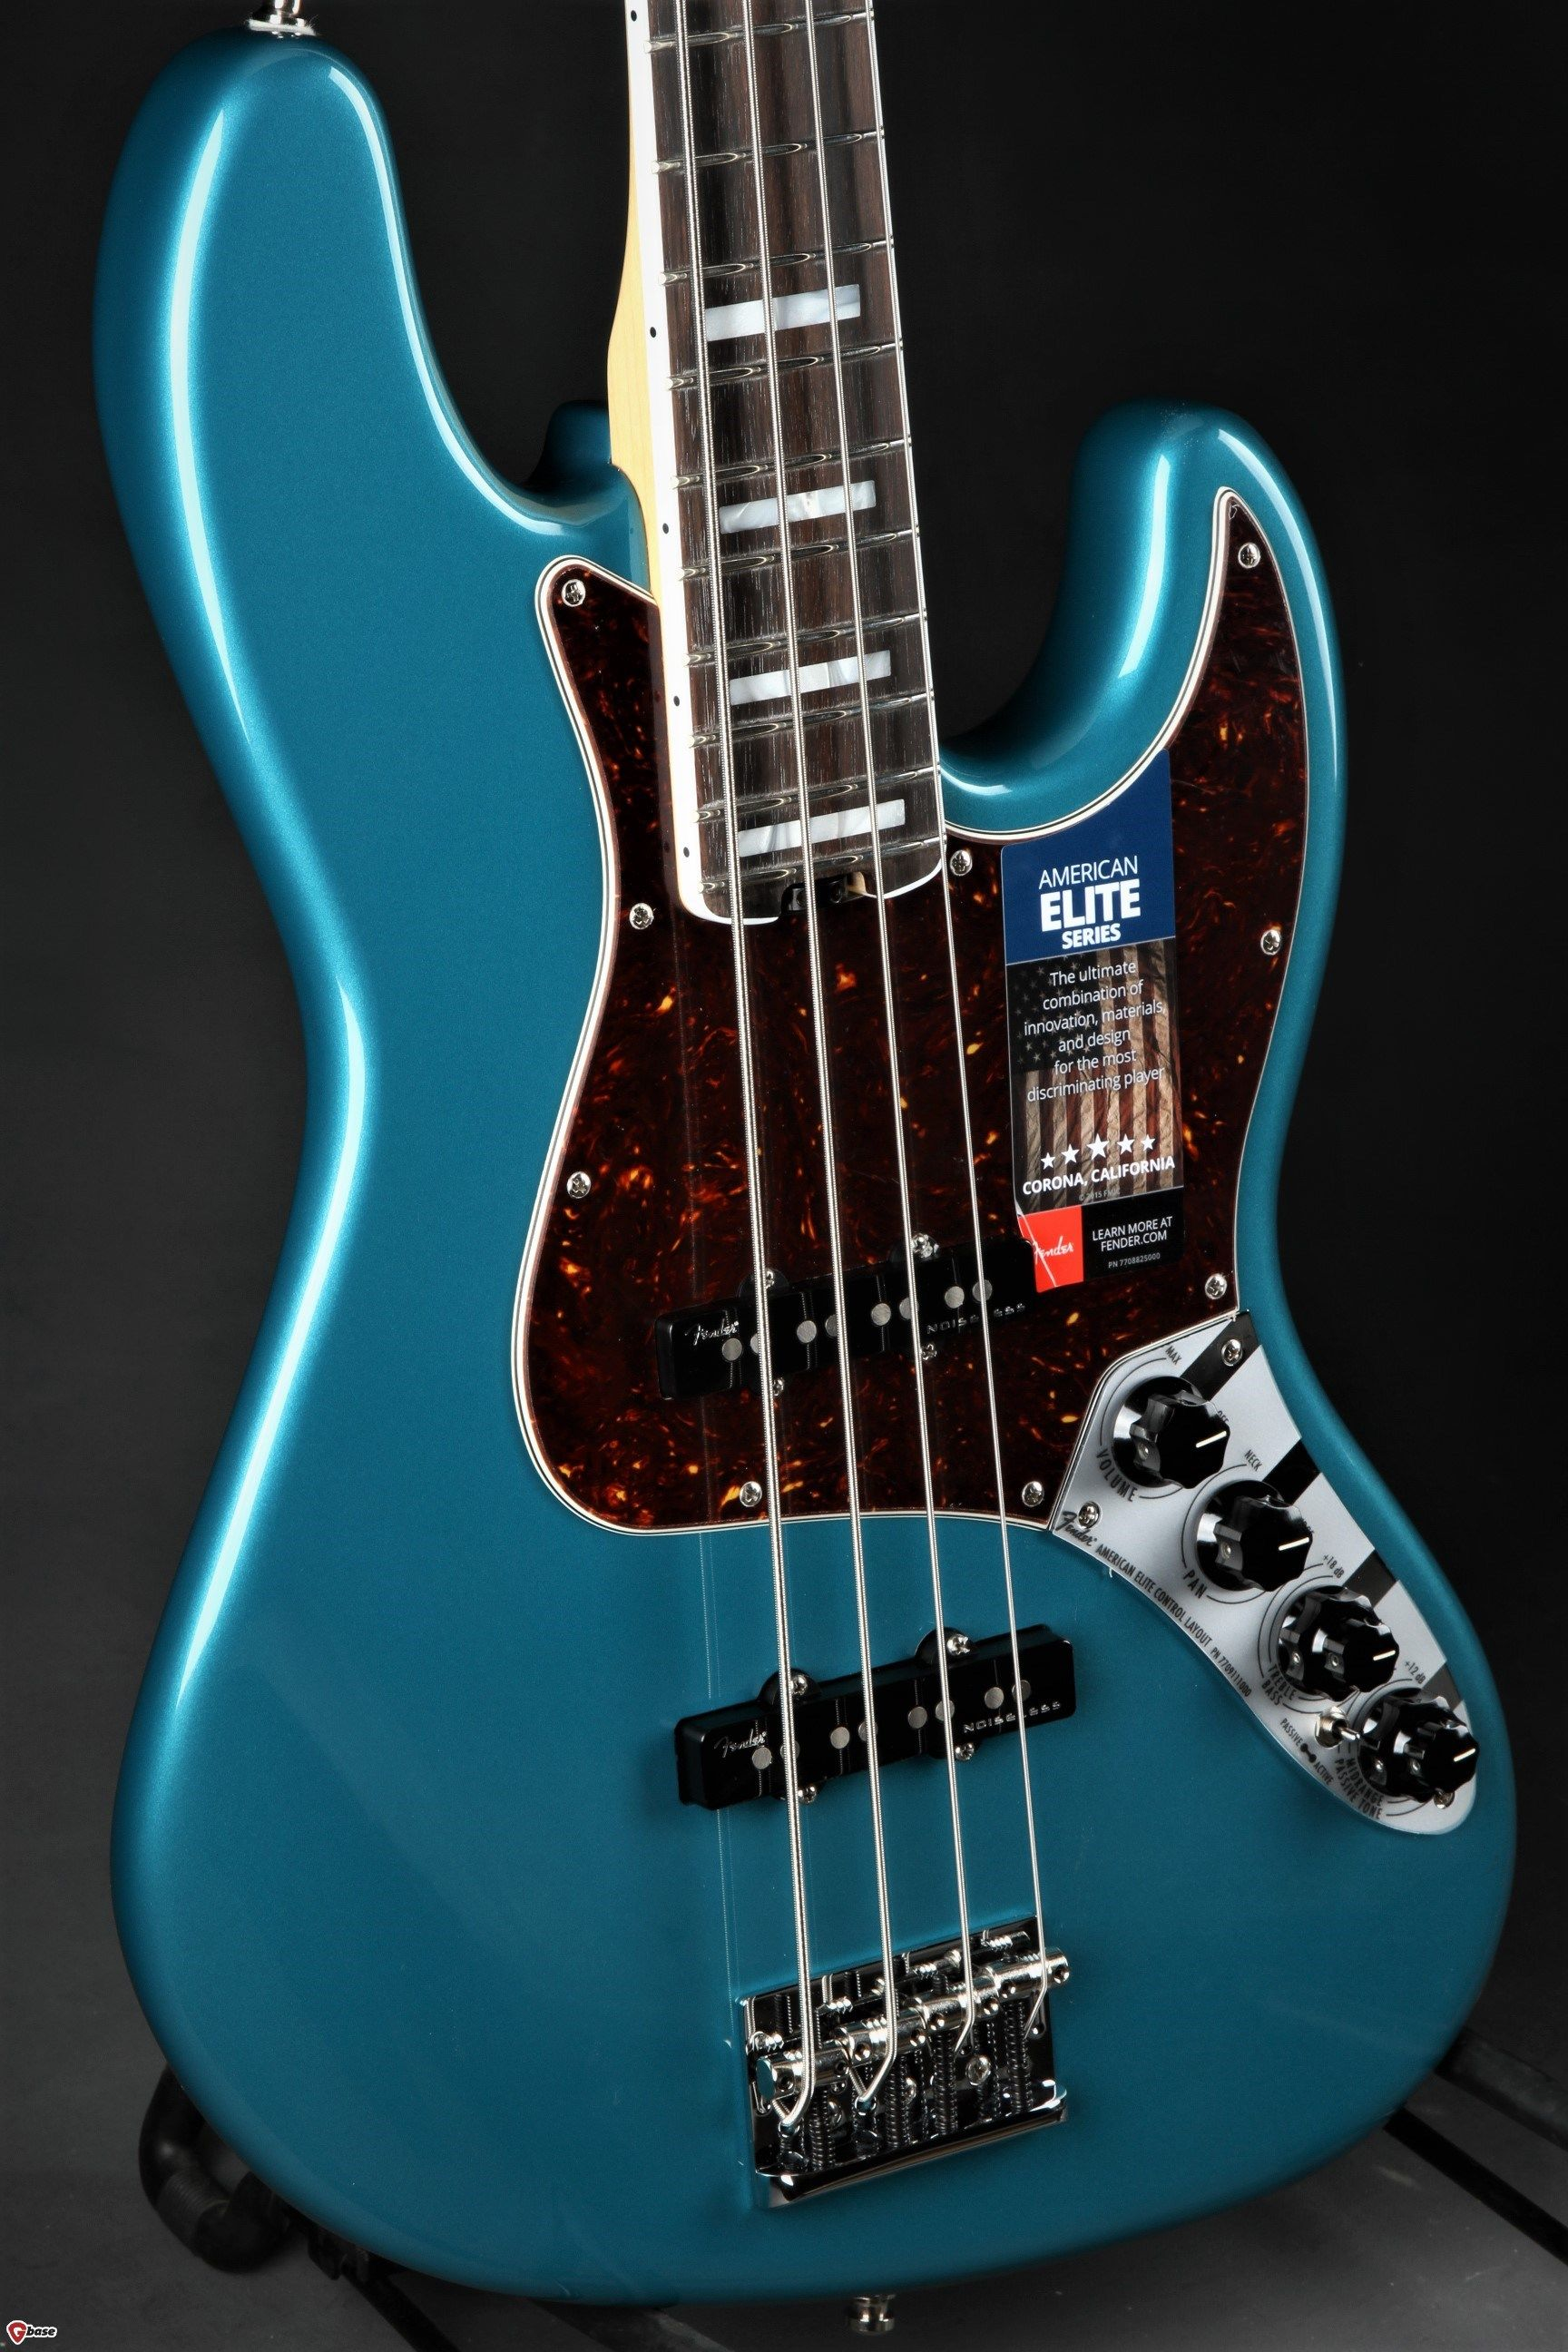 Bass Guitars Guitars & Basses Learned Fender American Vintage Jazz Bass Electric Bass Guitar used